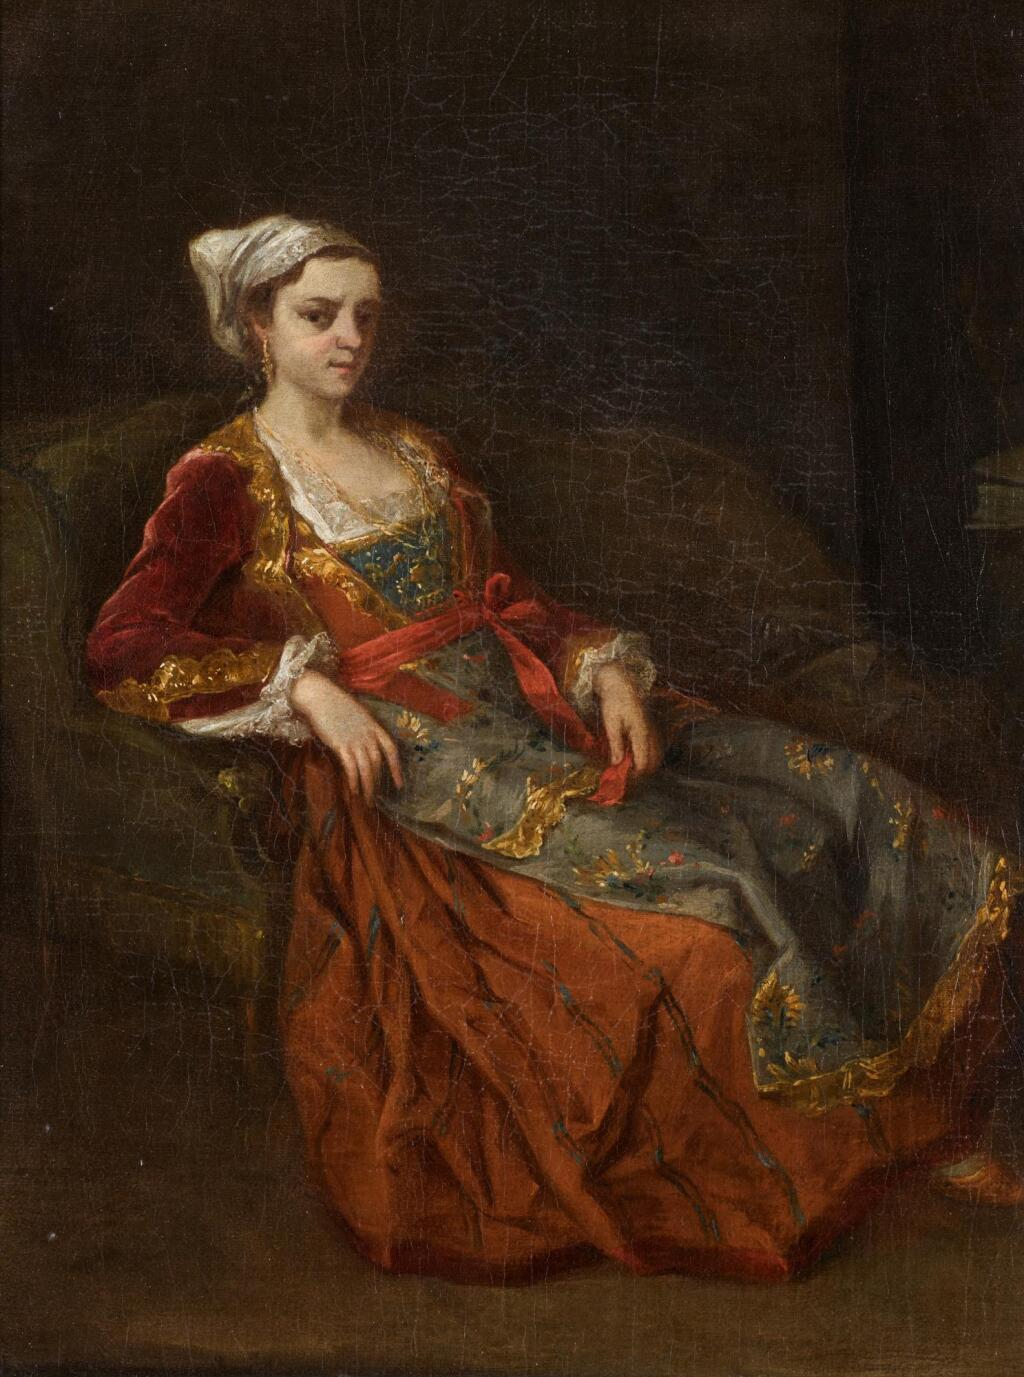 ATTRIBUTED TO ANTOINE DE FAVRAY | Portrait of a lady in Turkish dress seated in an armchair